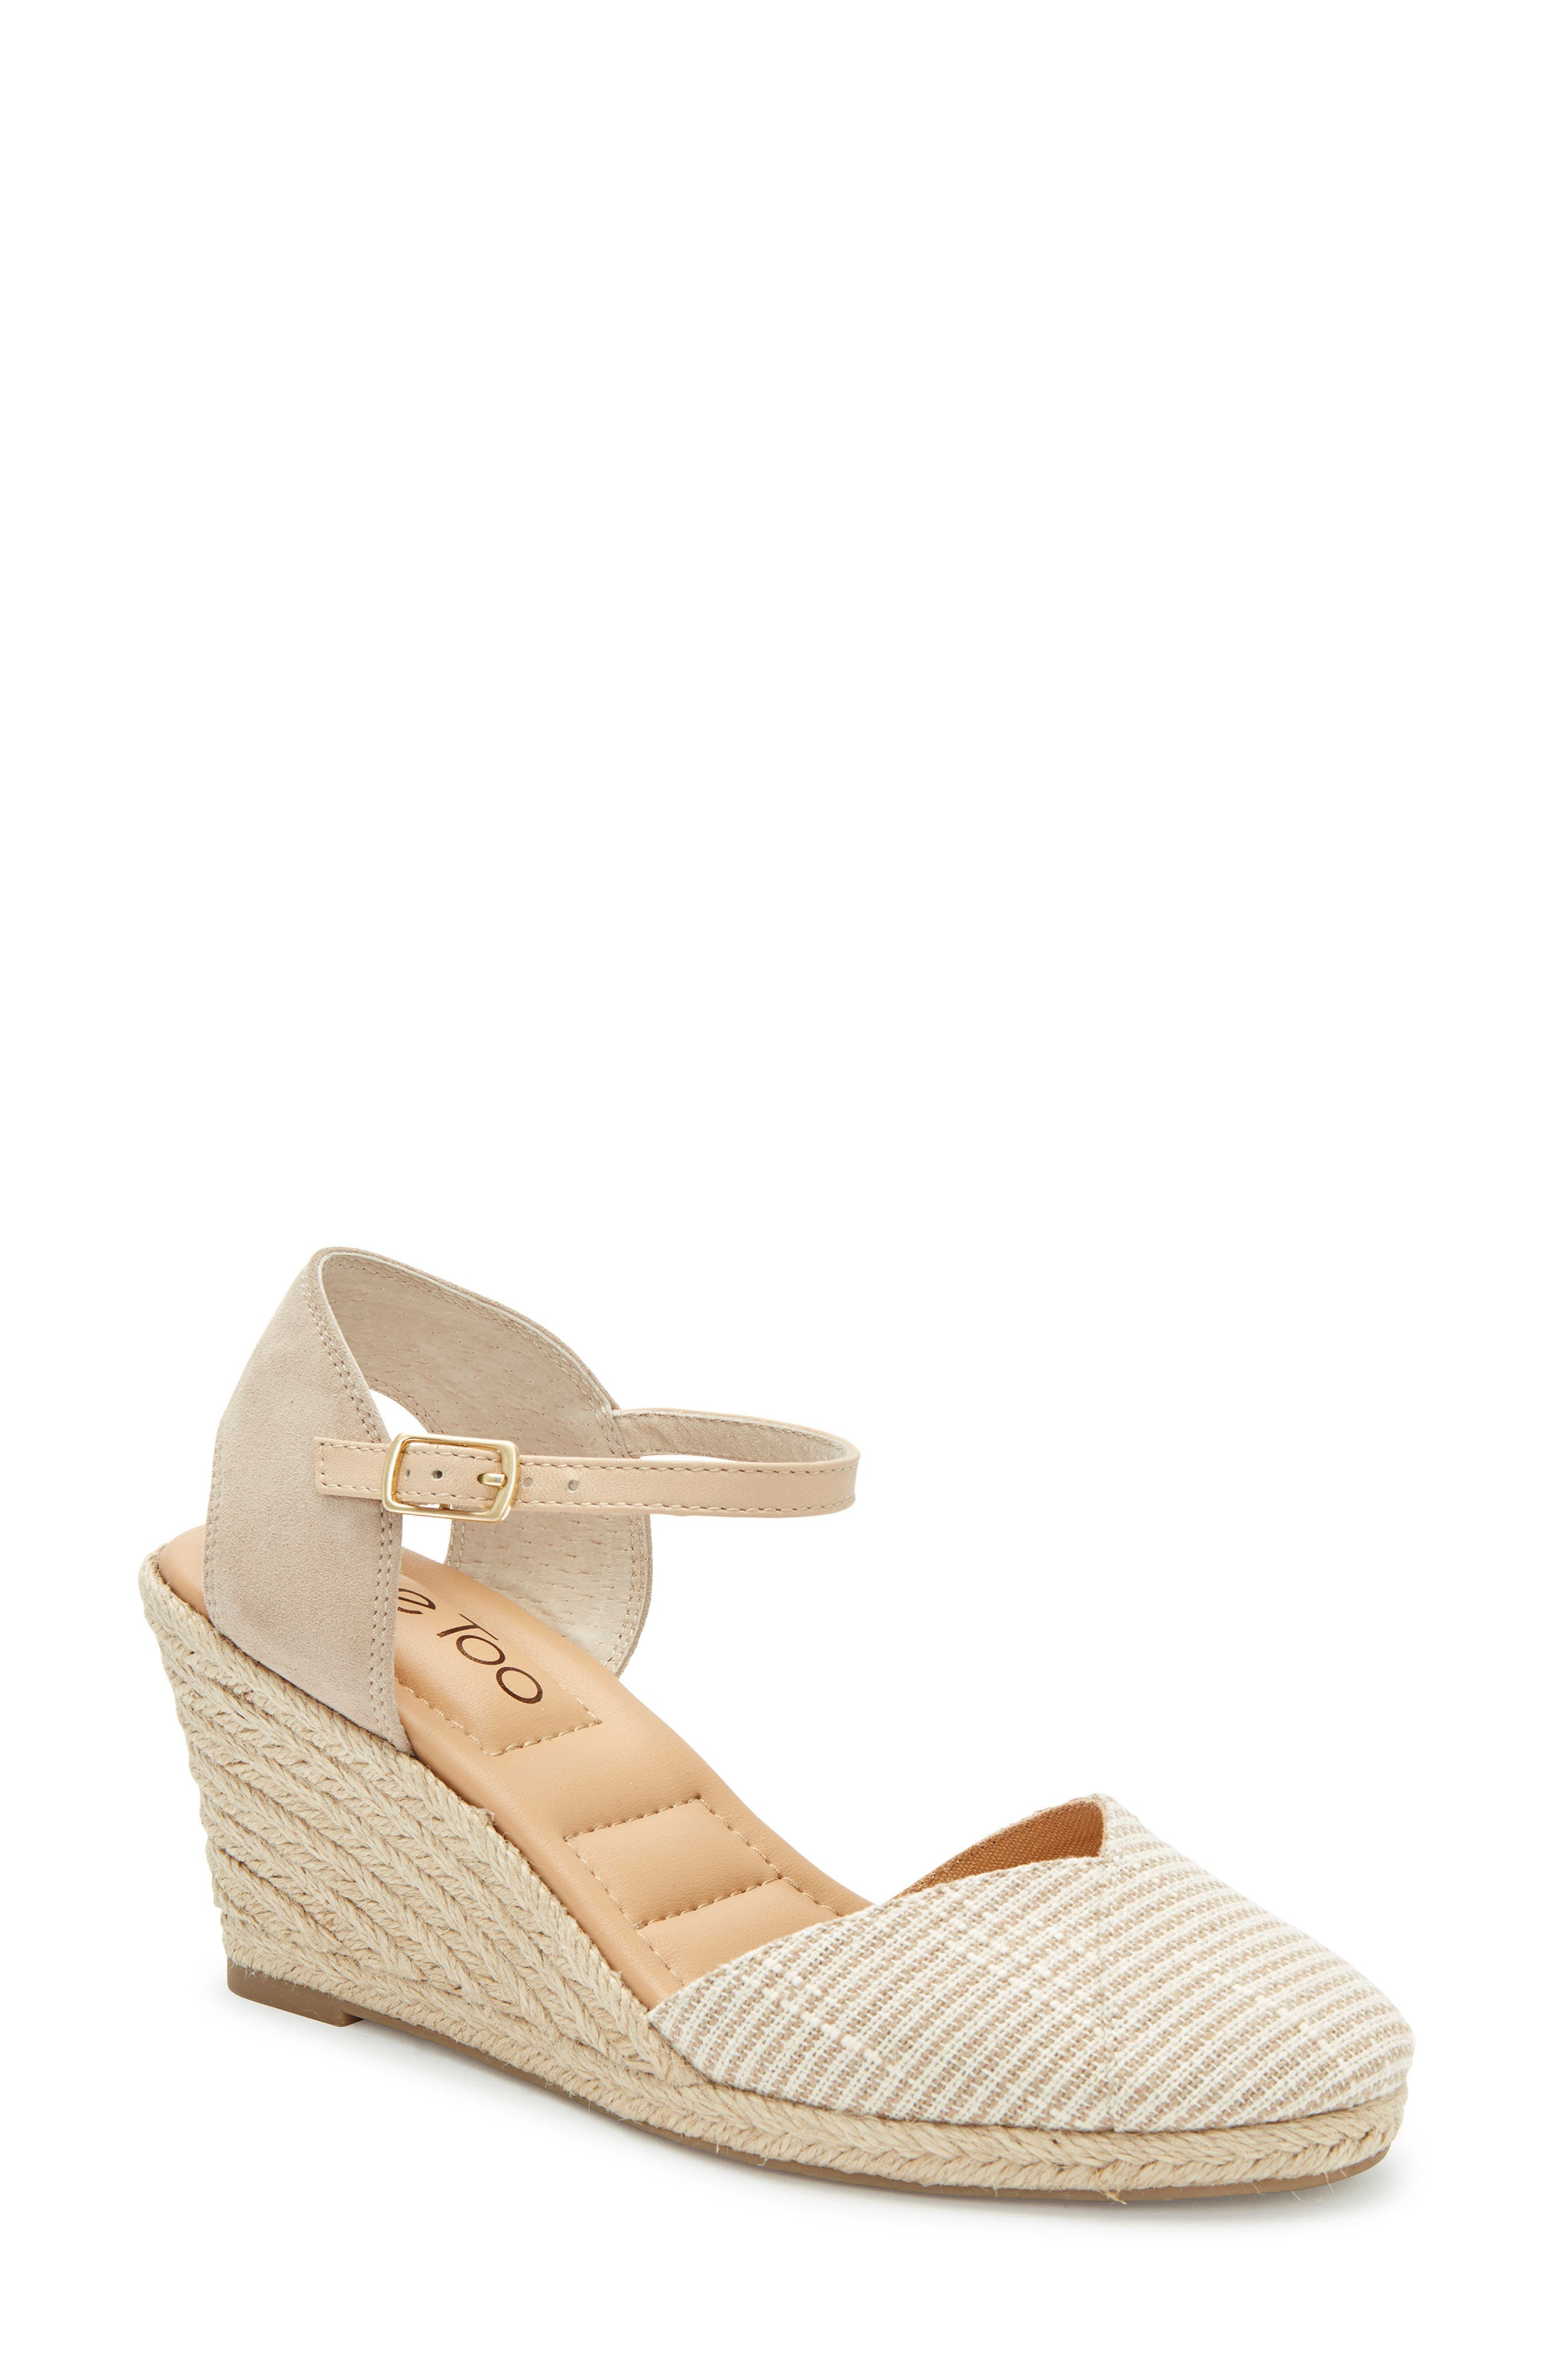 Brenna Espadrille Wedge Sandal, Main, color, TAN FABRIC